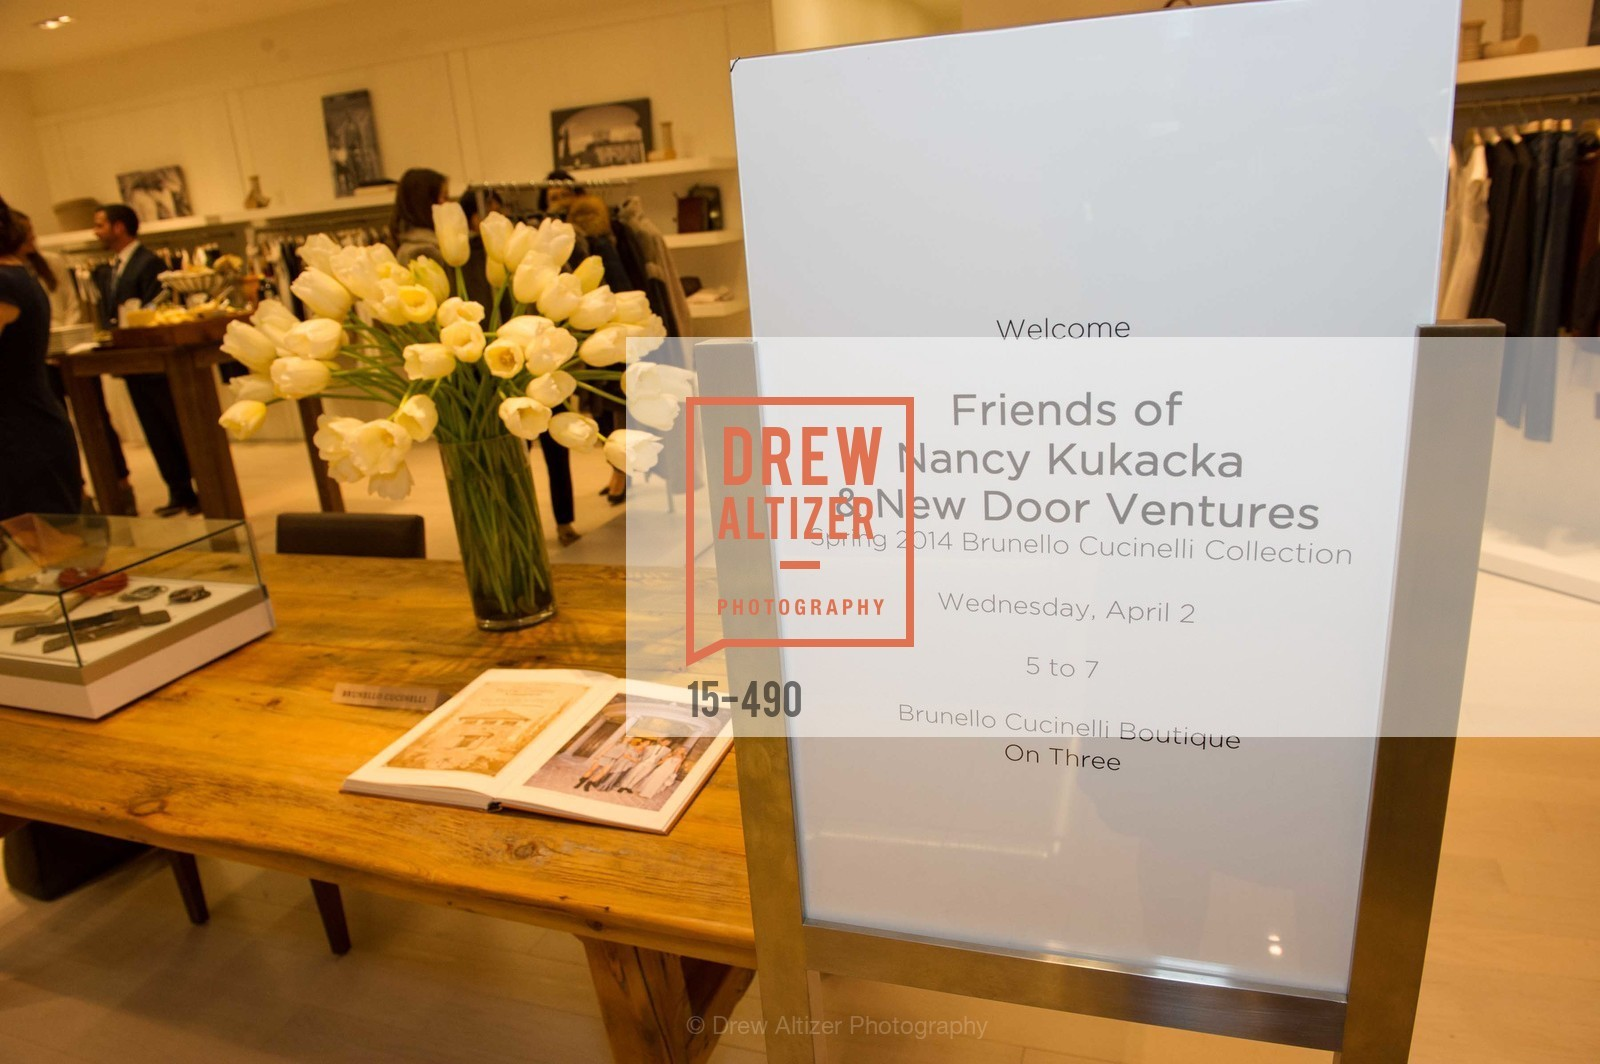 Atmosphere, Nancy Kukacka Hosts Brunello Cucinelli at SAKS FIFTH AVENUE Benefitting New Door Ventures, US. The Battery, April 2nd, 2014,Drew Altizer, Drew Altizer Photography, full-service event agency, private events, San Francisco photographer, photographer California